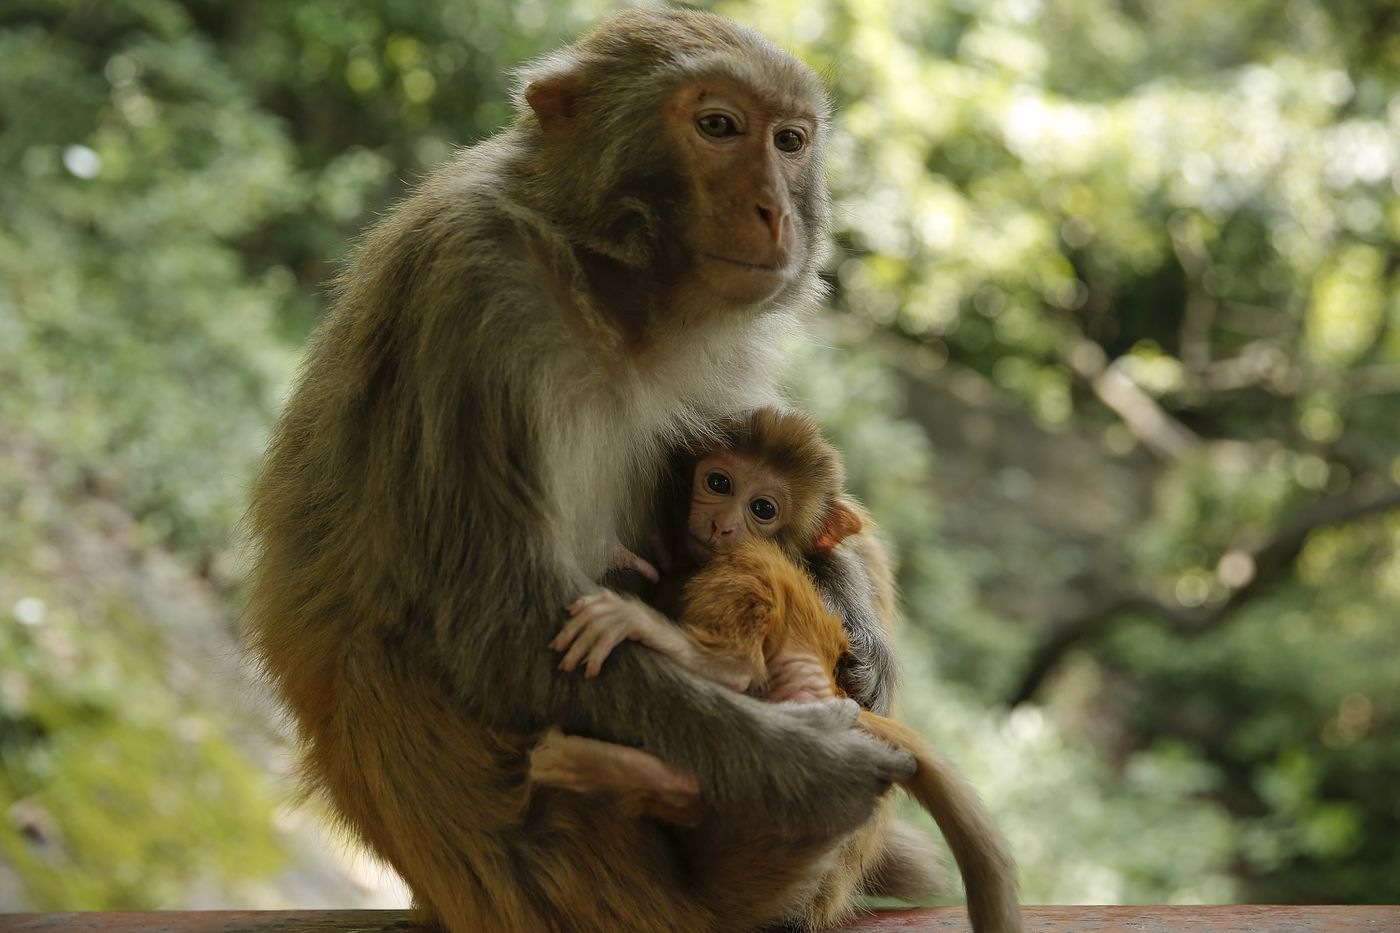 Chinese scientists added human brain genes to monkeys - Vox